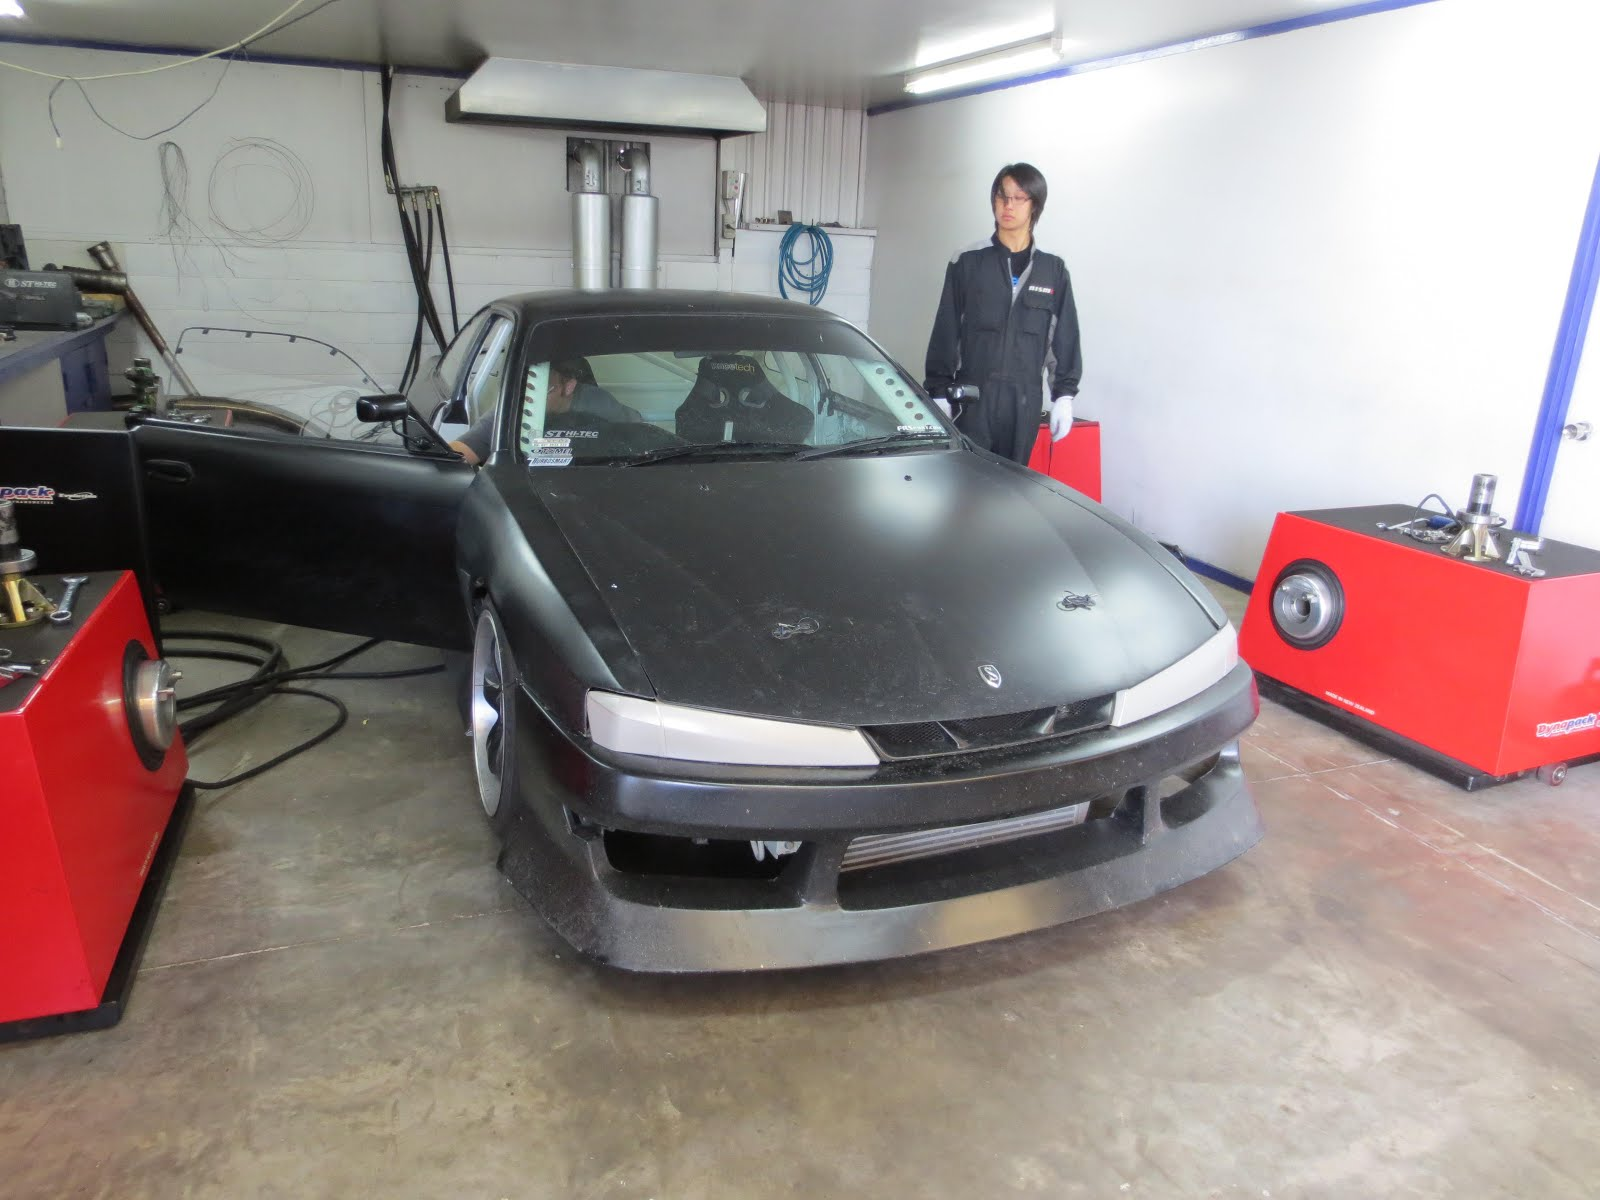 ST Hitec's Tuning Diary: SR20DET with TOMEI ARMS 8270 TURBO